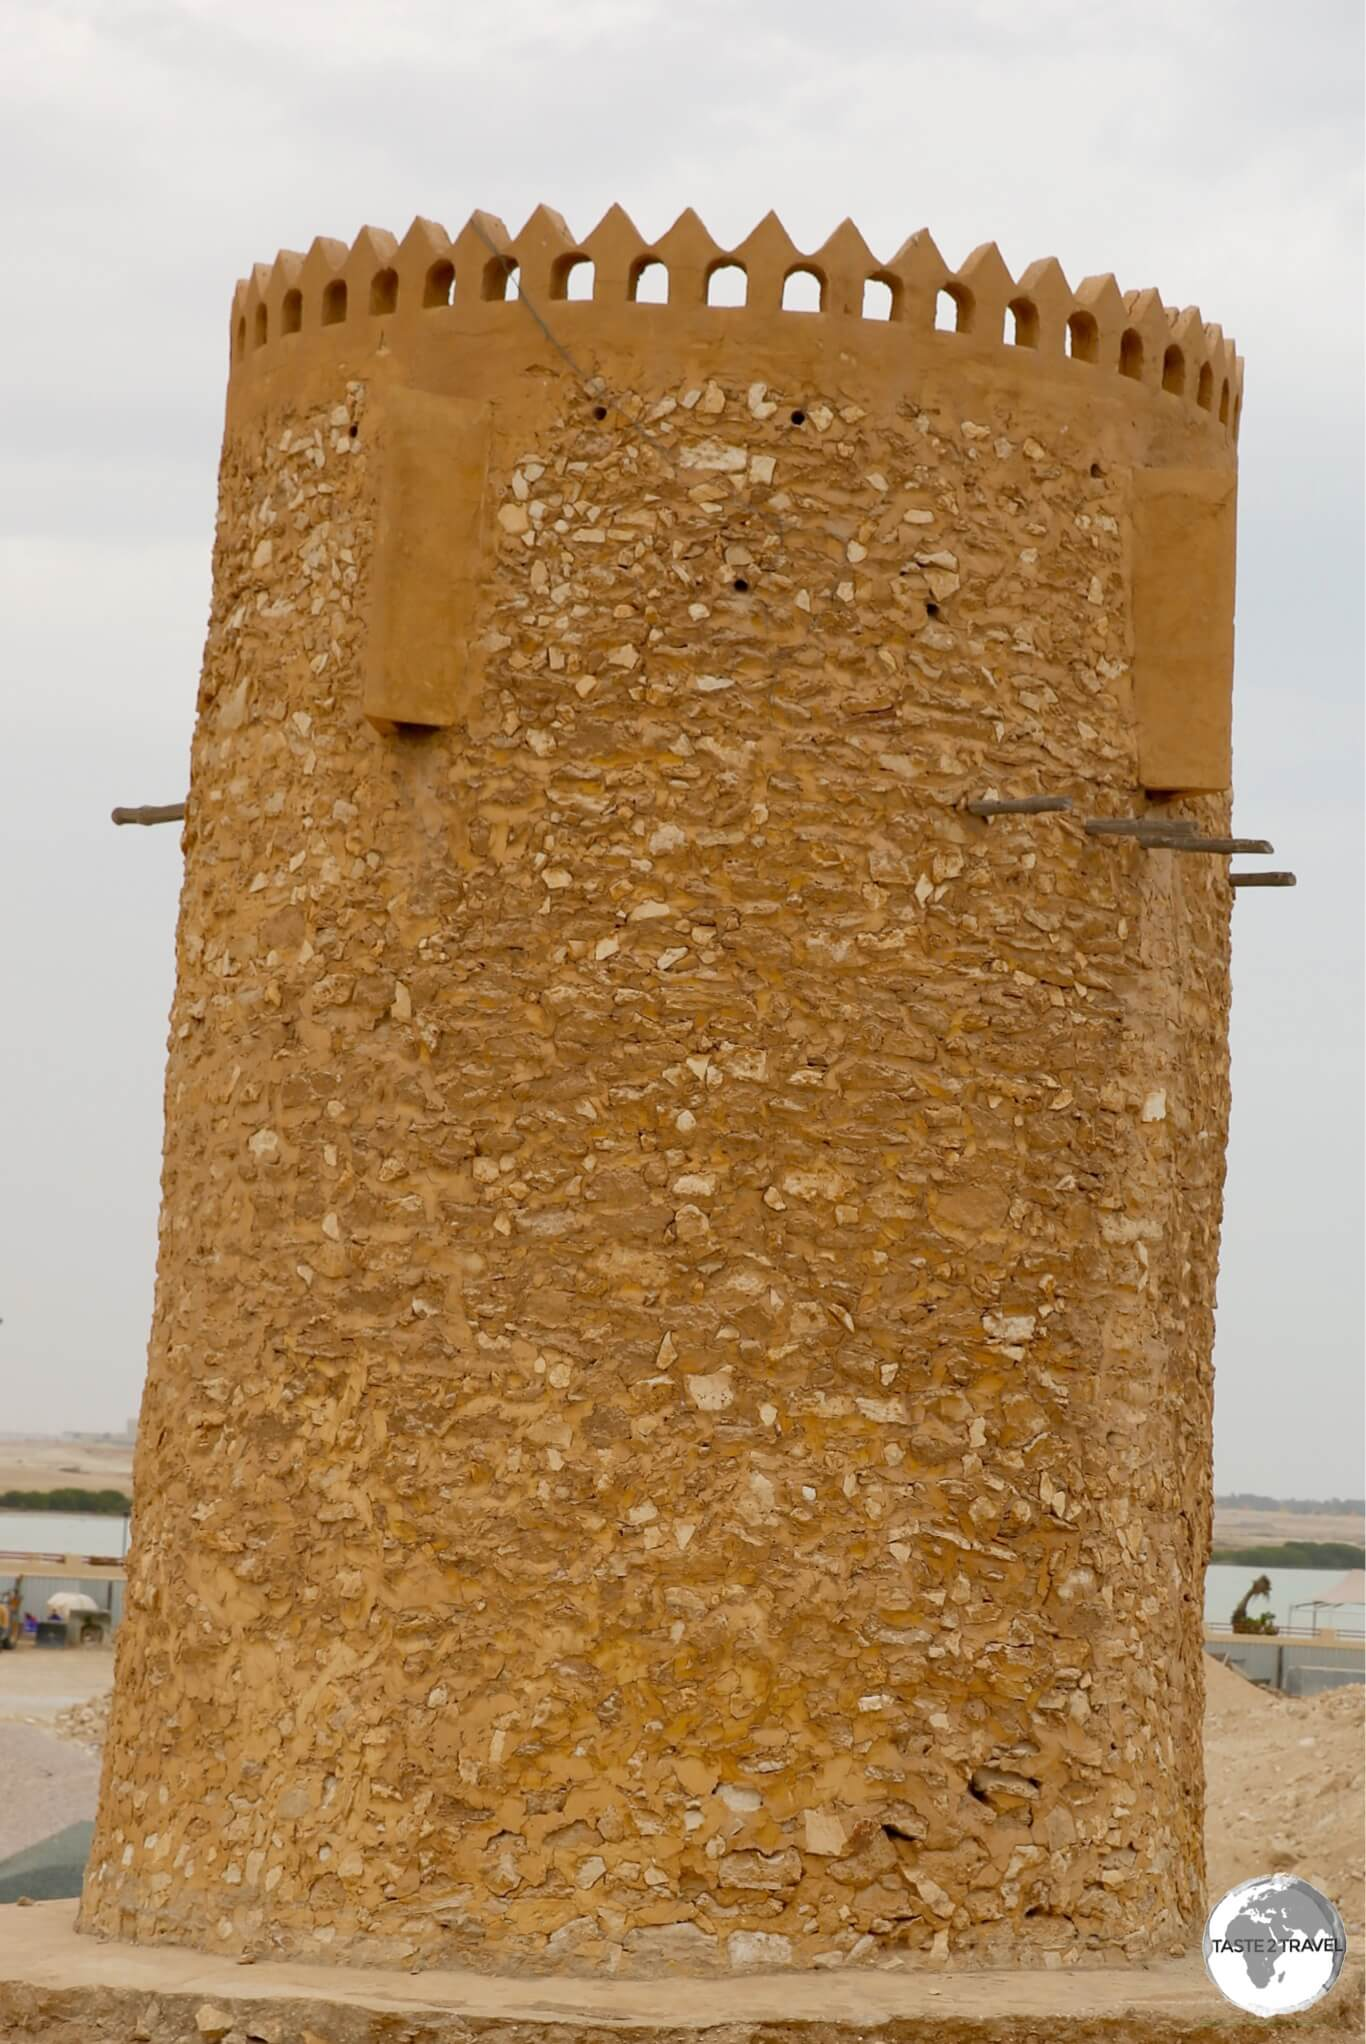 Al Khor is known for its historic watchtowers.